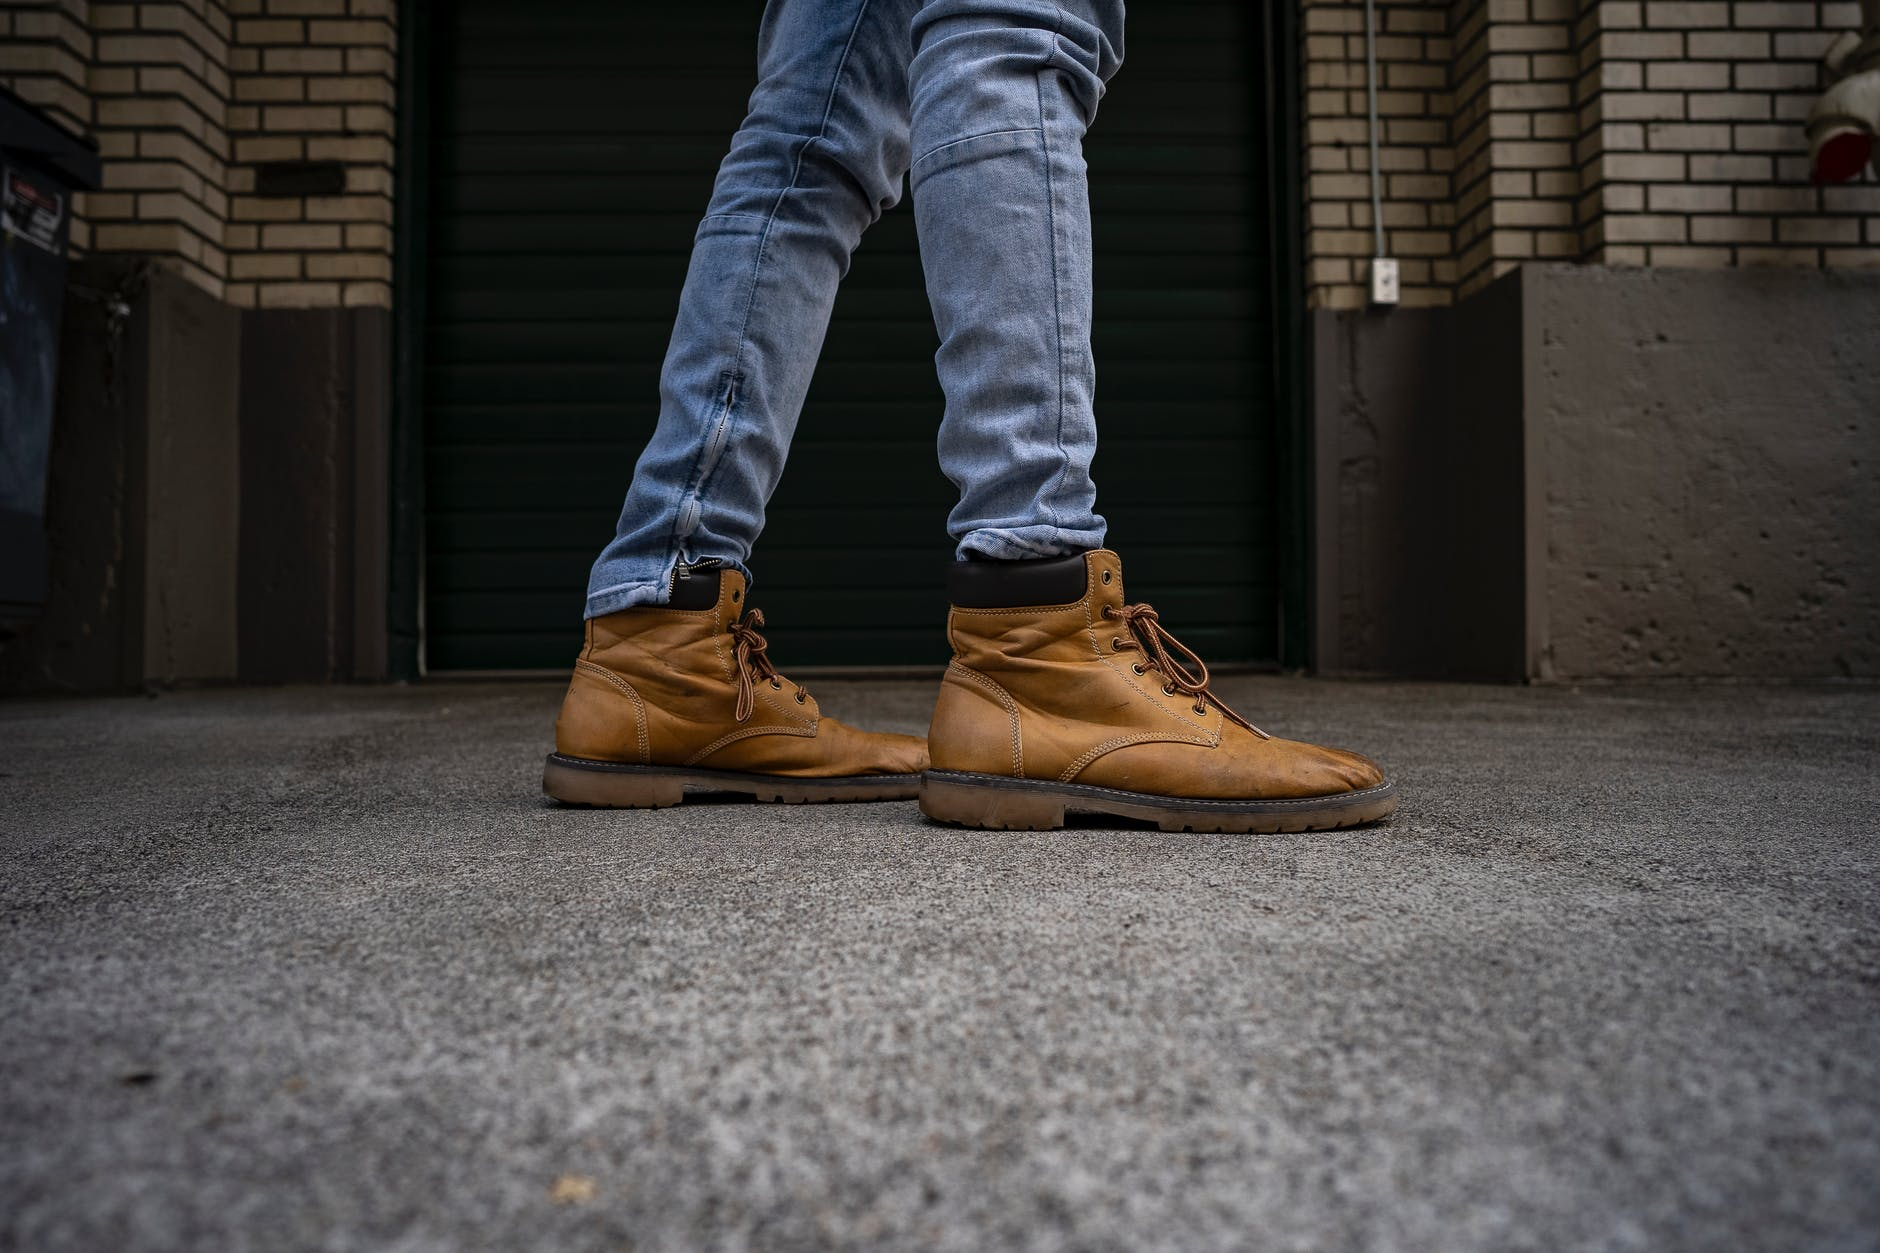 A person is wearing a blue jeans and a brown work boots